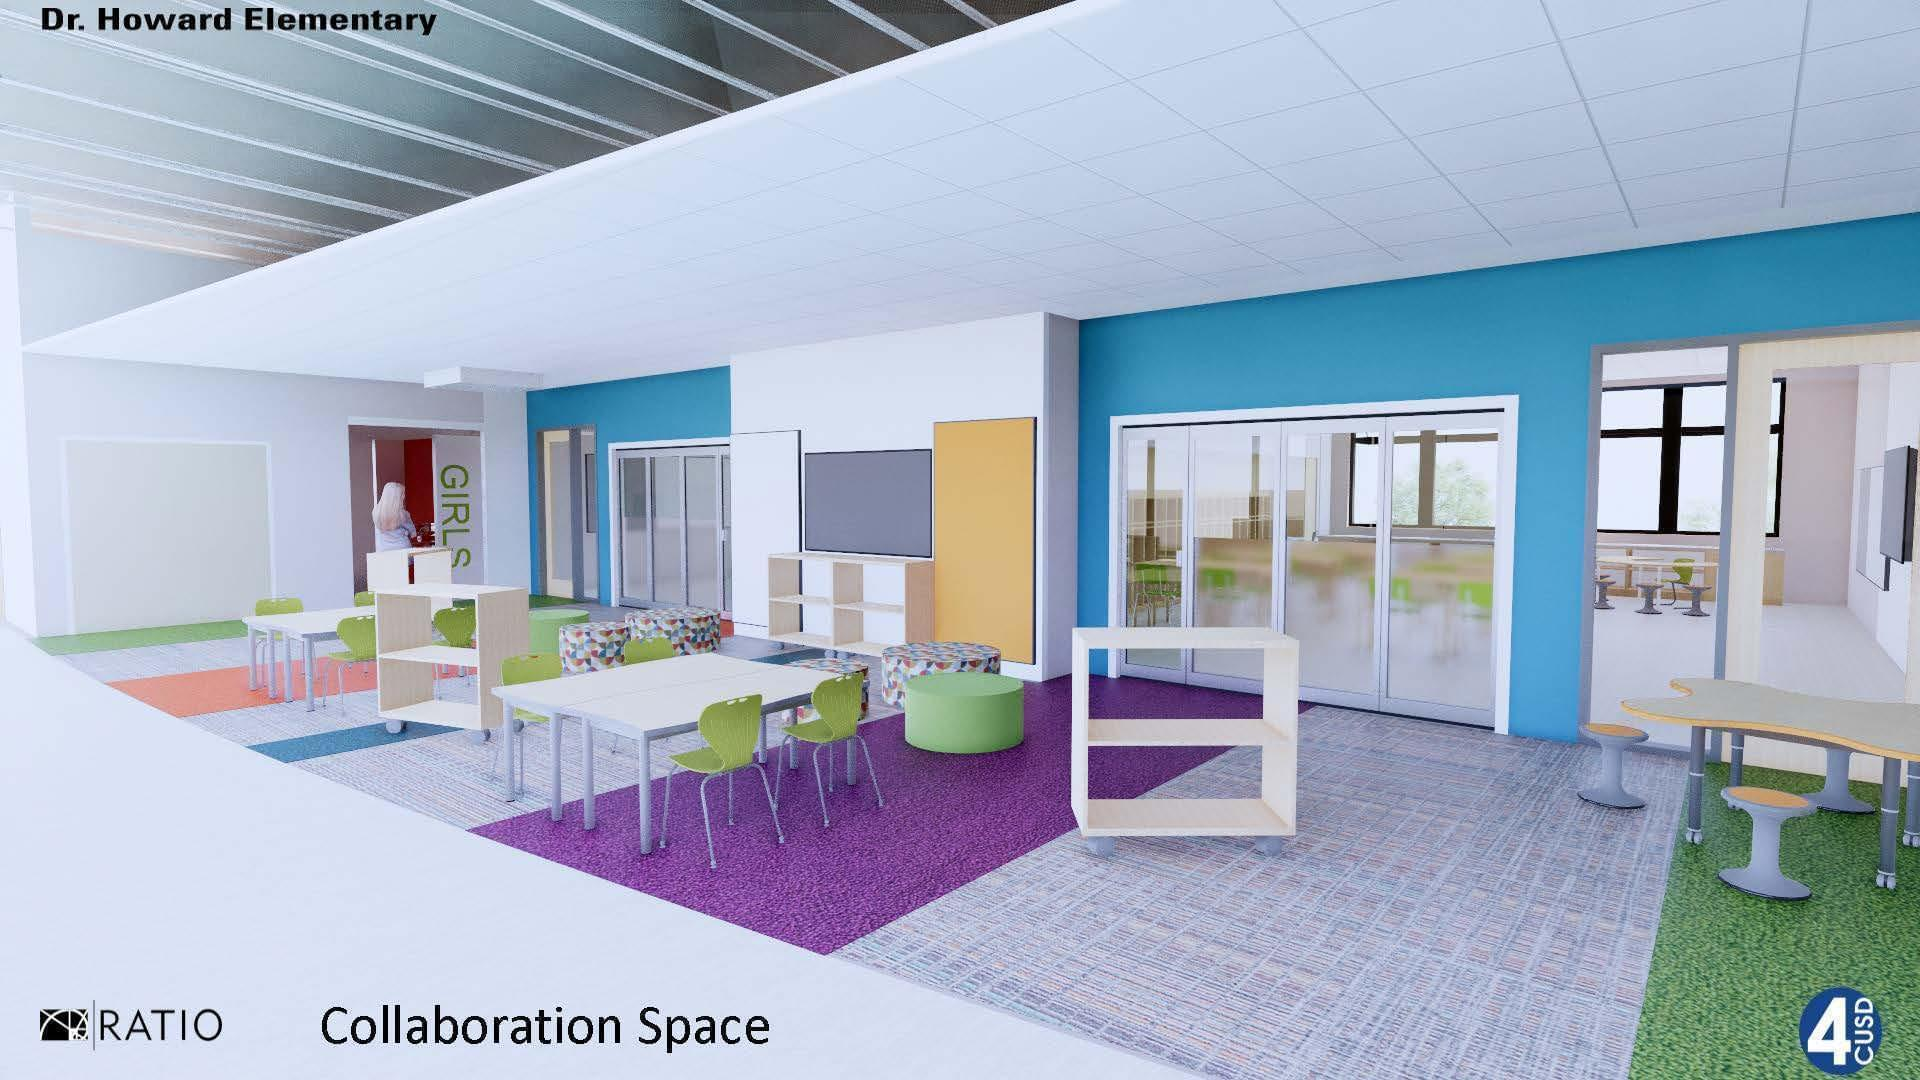 A rendering of a collaboration space at the new Dr. Howard Elementary School.